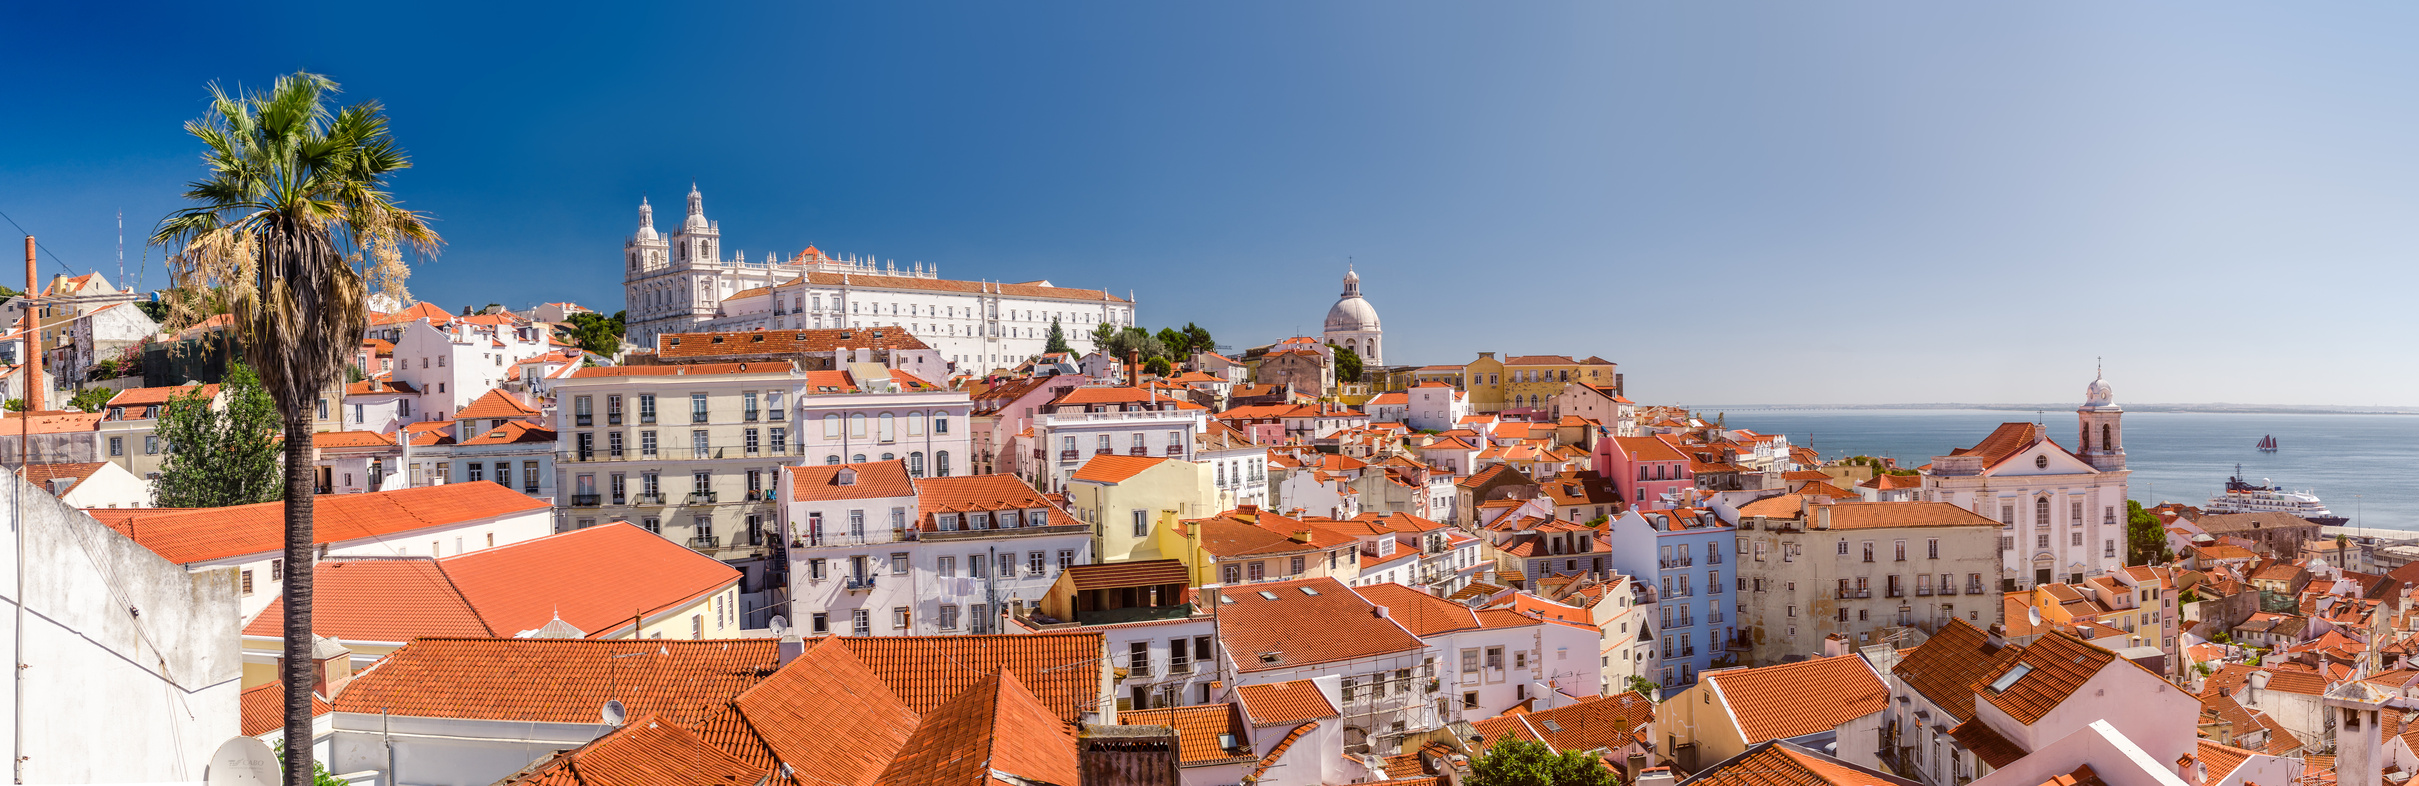 Portugal_Lisbon_travel_holidays_vacations_Lisboa_Alfama_Tejo_view.jpg